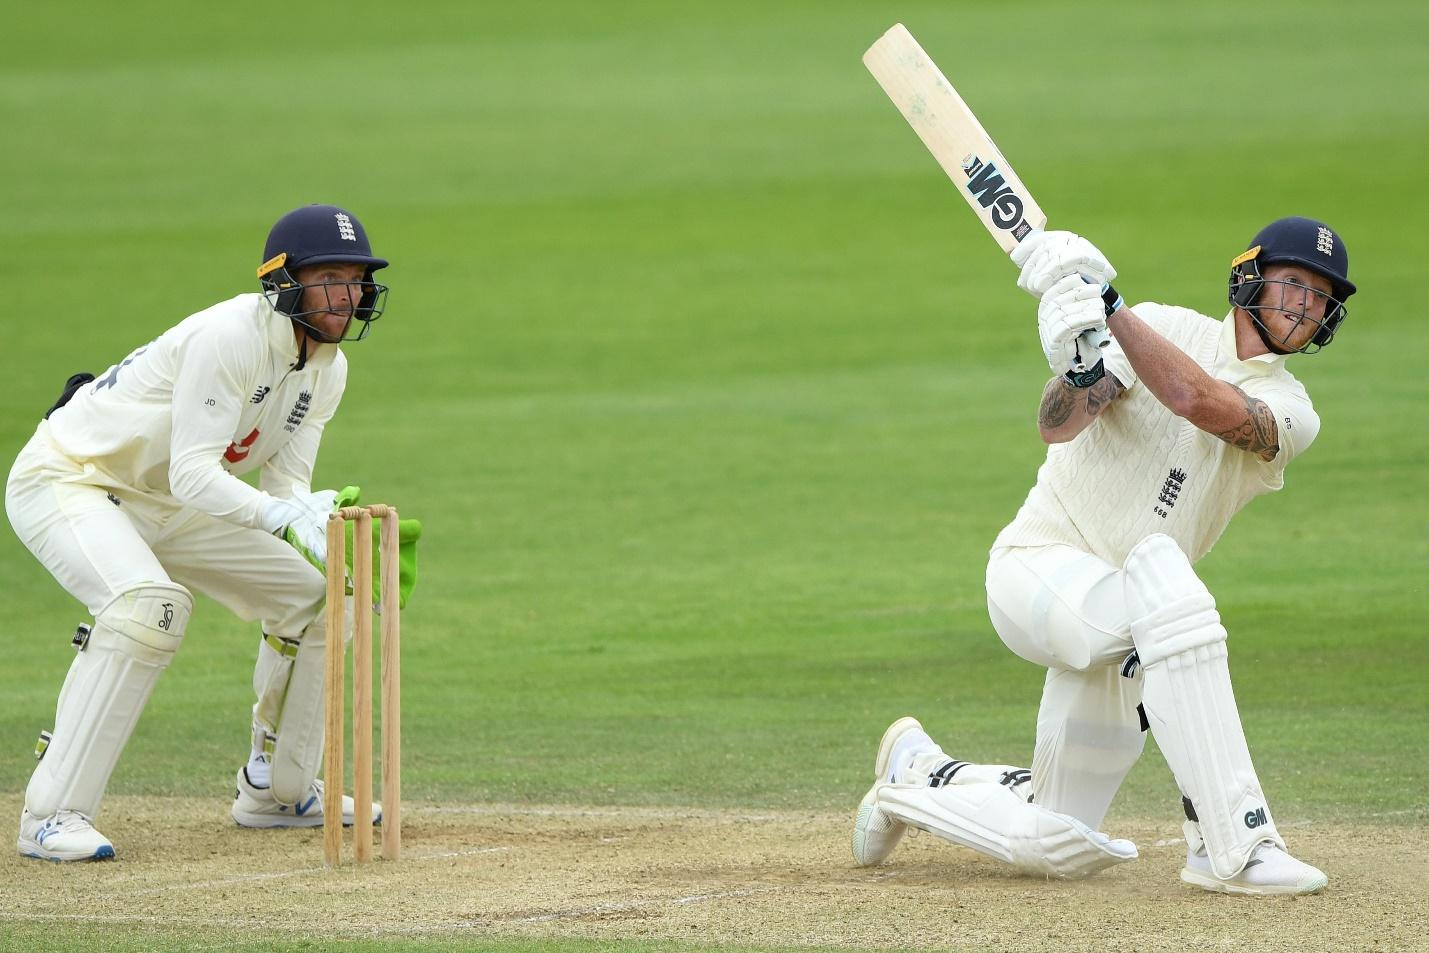 Cricket: Test match noises will enhance sound of leather on willow for England and West Indies   News   The Times